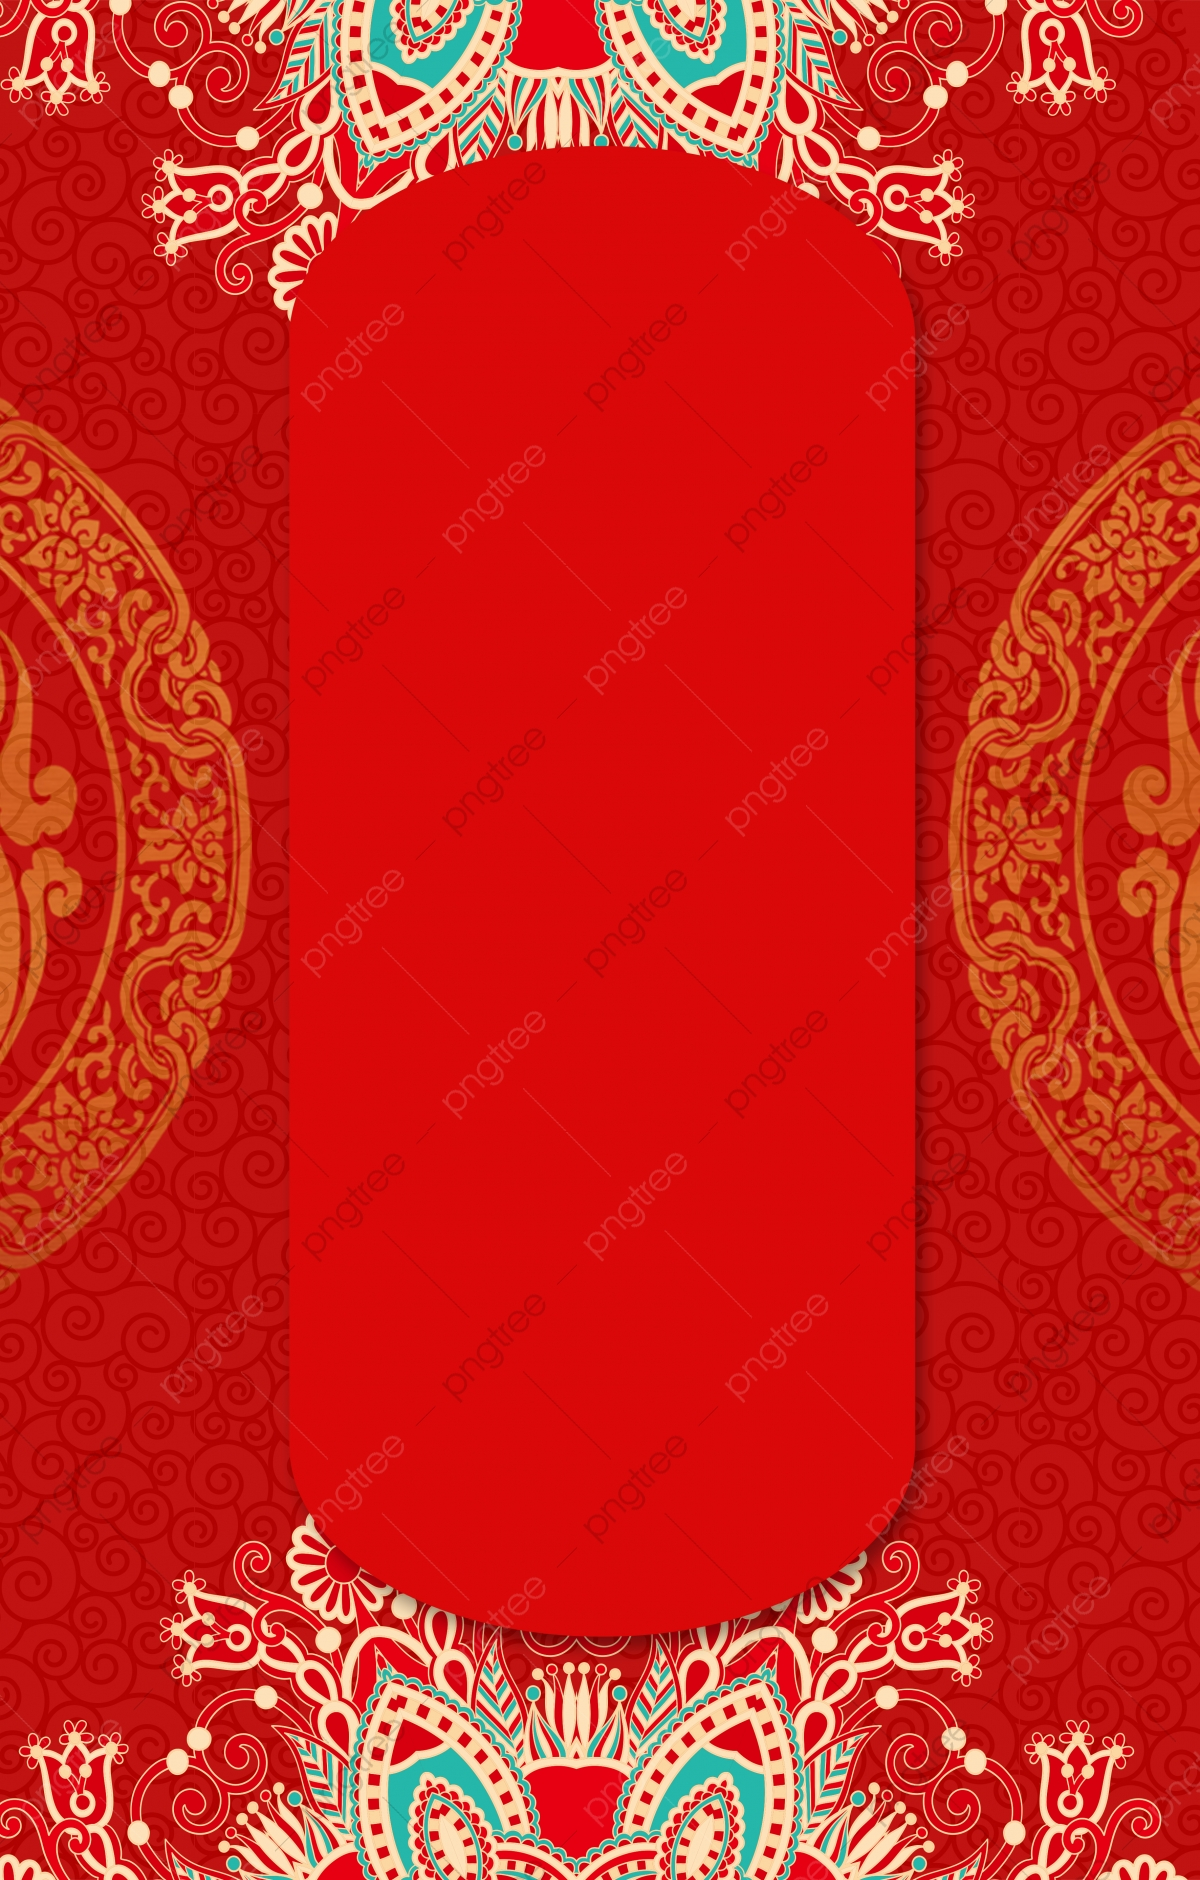 Wedding Invitation Card Red Ad Chinese Style Wedding Invitation Card Background Image For Free Download